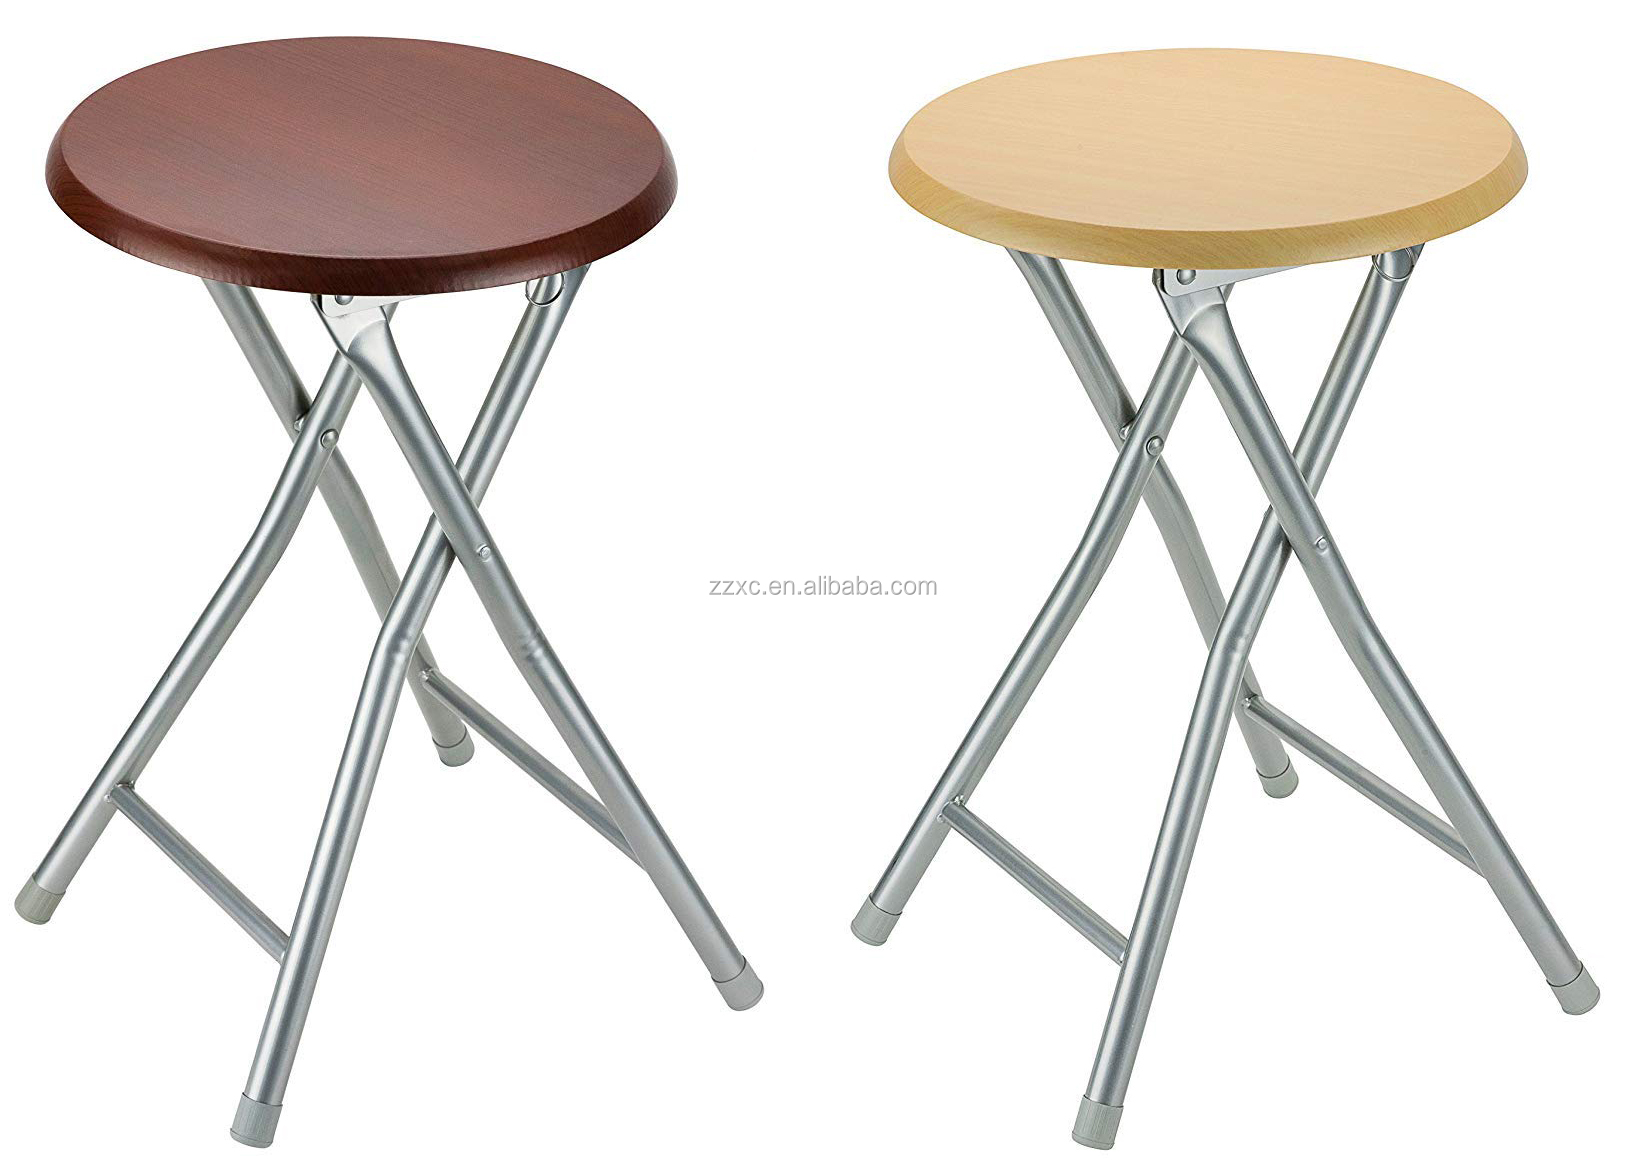 Round Wood Folding Stools With Metal Legs